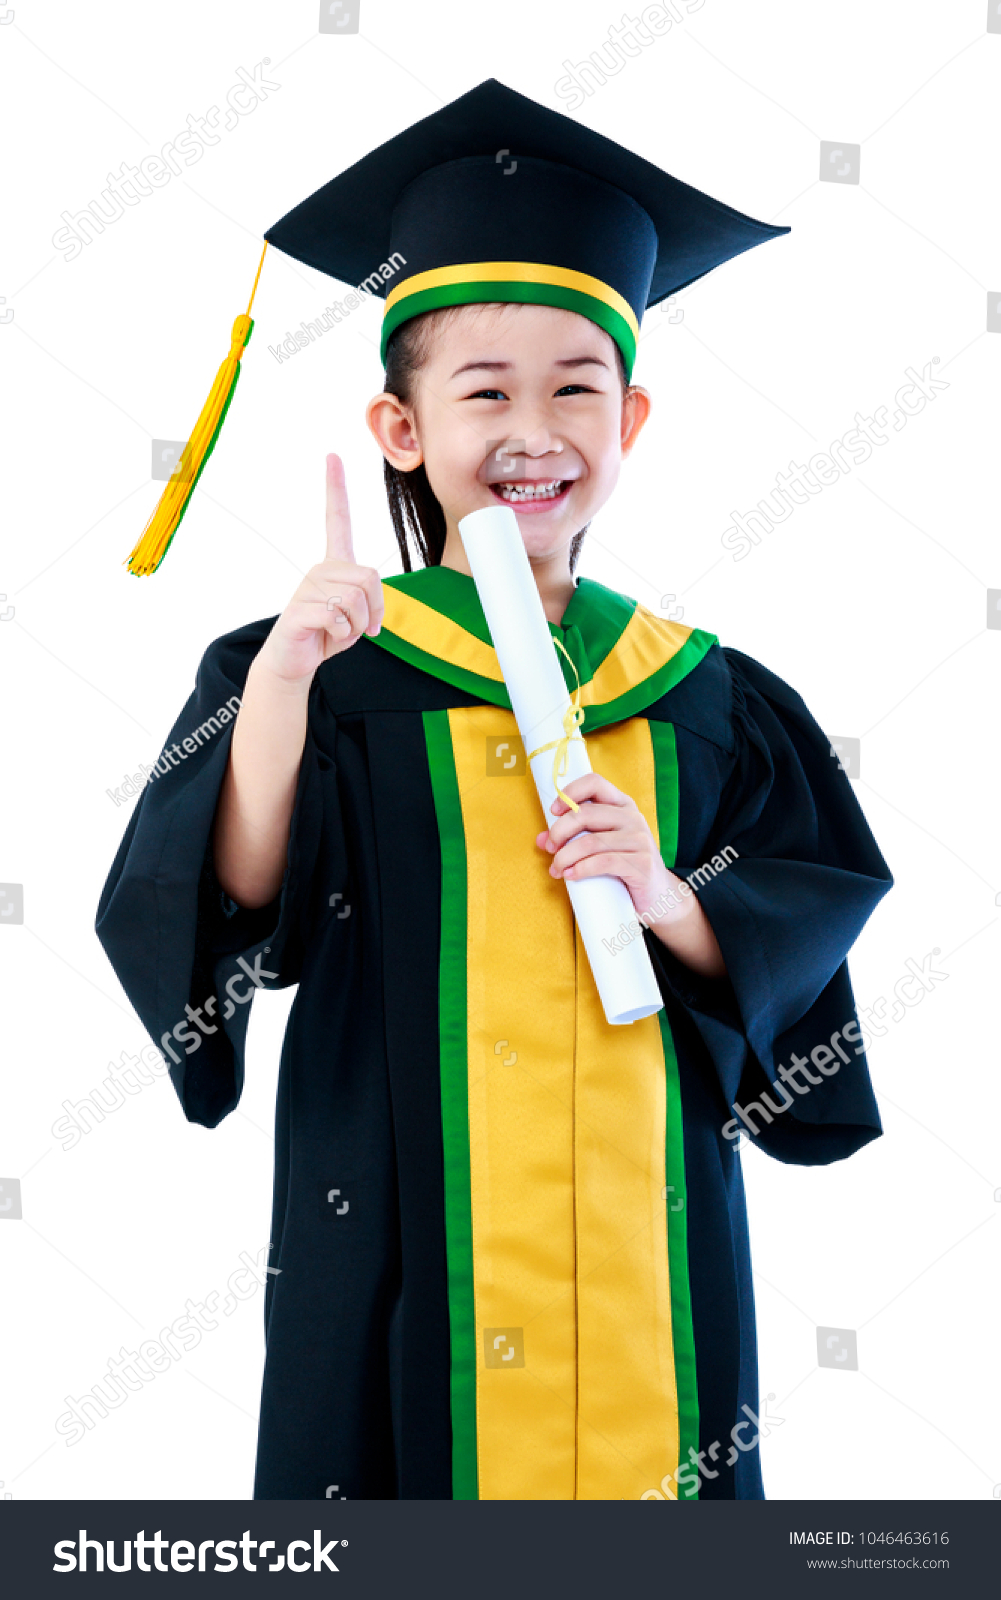 Kindergarten Graduation Asian Child Graduation Gown Stock Photo ...